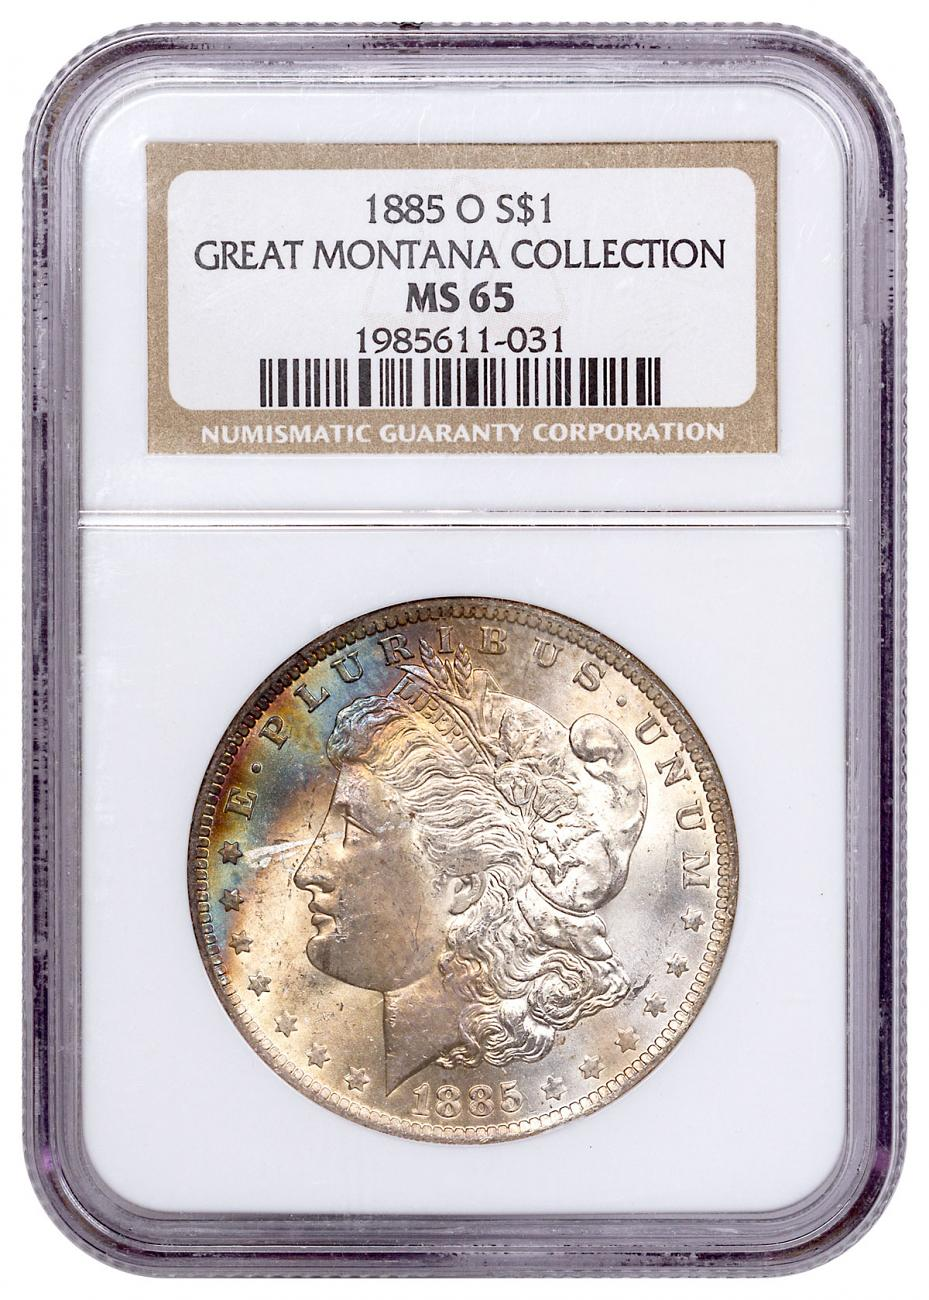 1885-O Morgan Silver Dollar From the Great Montana Collection NGC MS65 Toned CPCR 1031